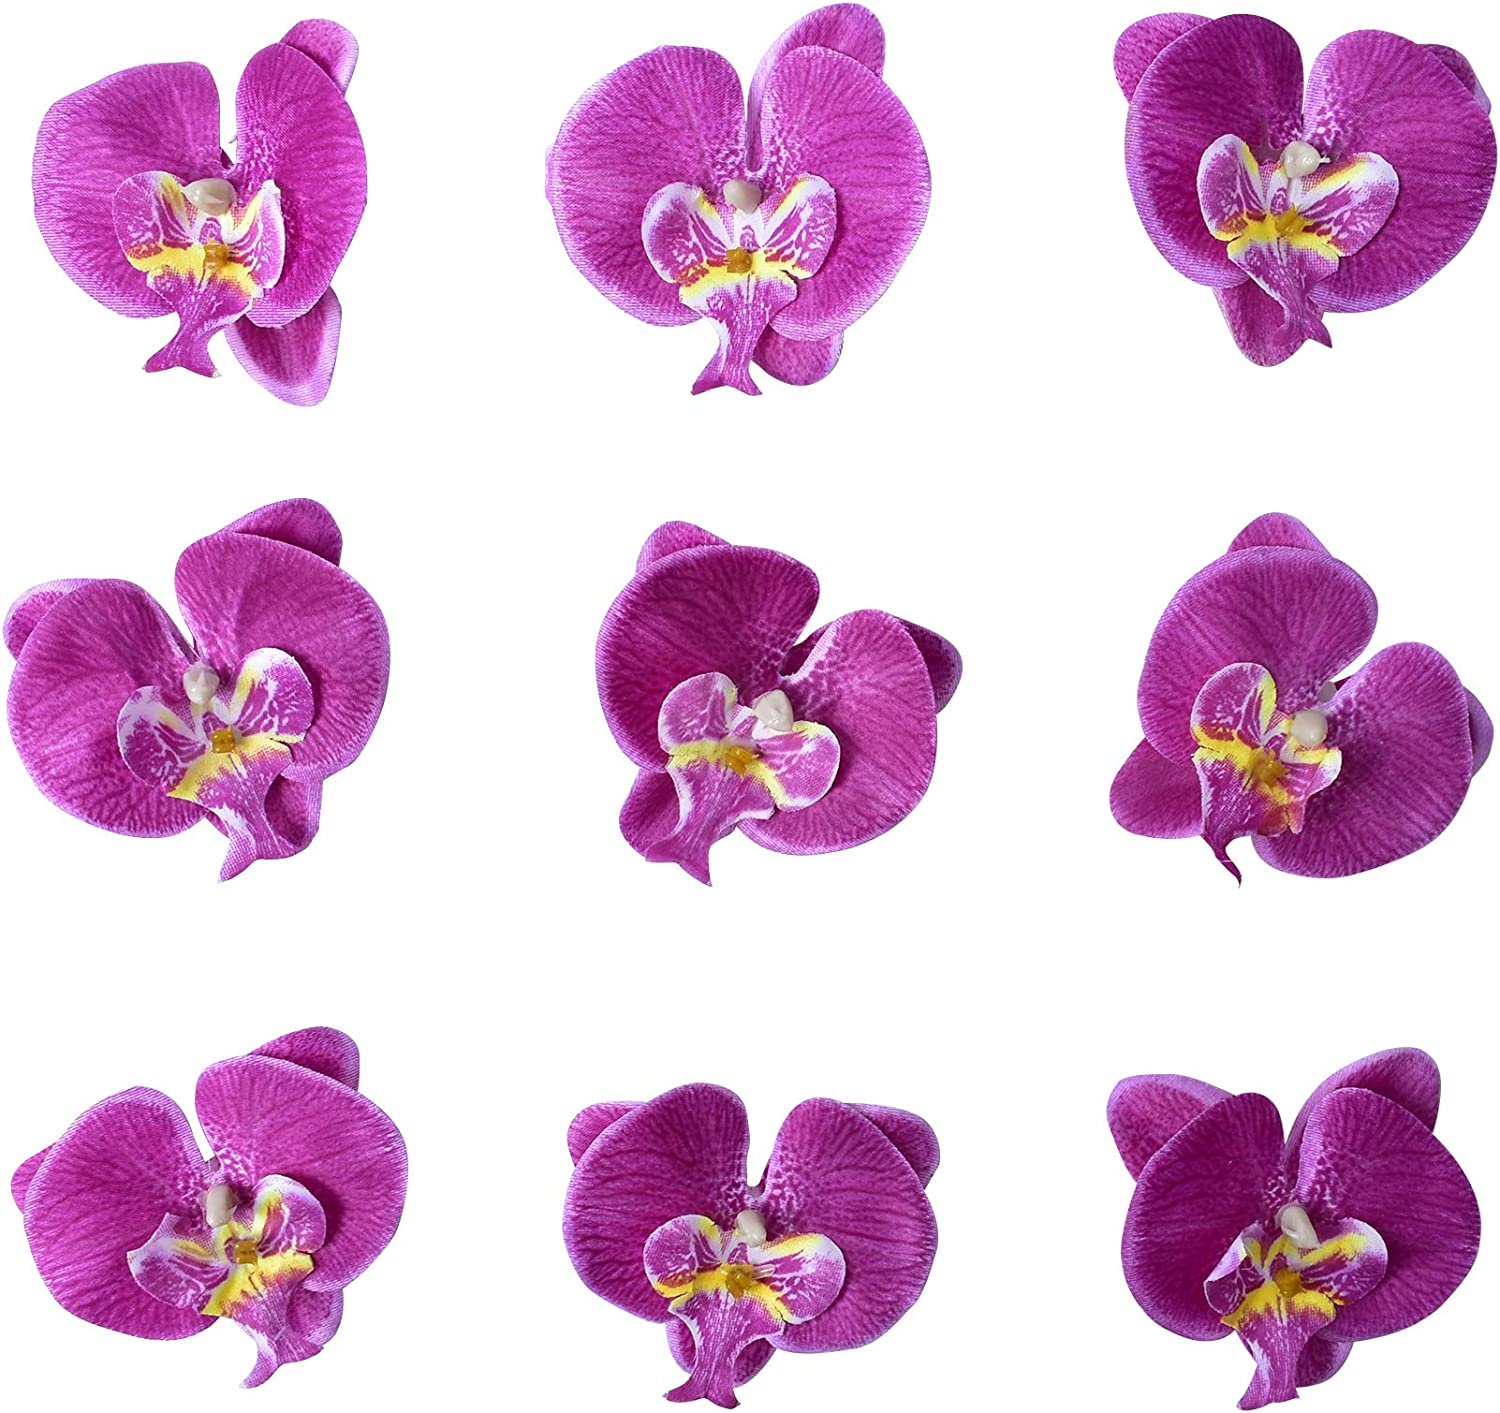 HOKPA Artificial Silk Phalaenopsis Flower Heads, Fake Butterfly Orchid Head Floral Bouquet for DIY Crafts Making Bridal Hair Clip Headbands Dress Photography Props Wedding Decor (20pcs Purple)